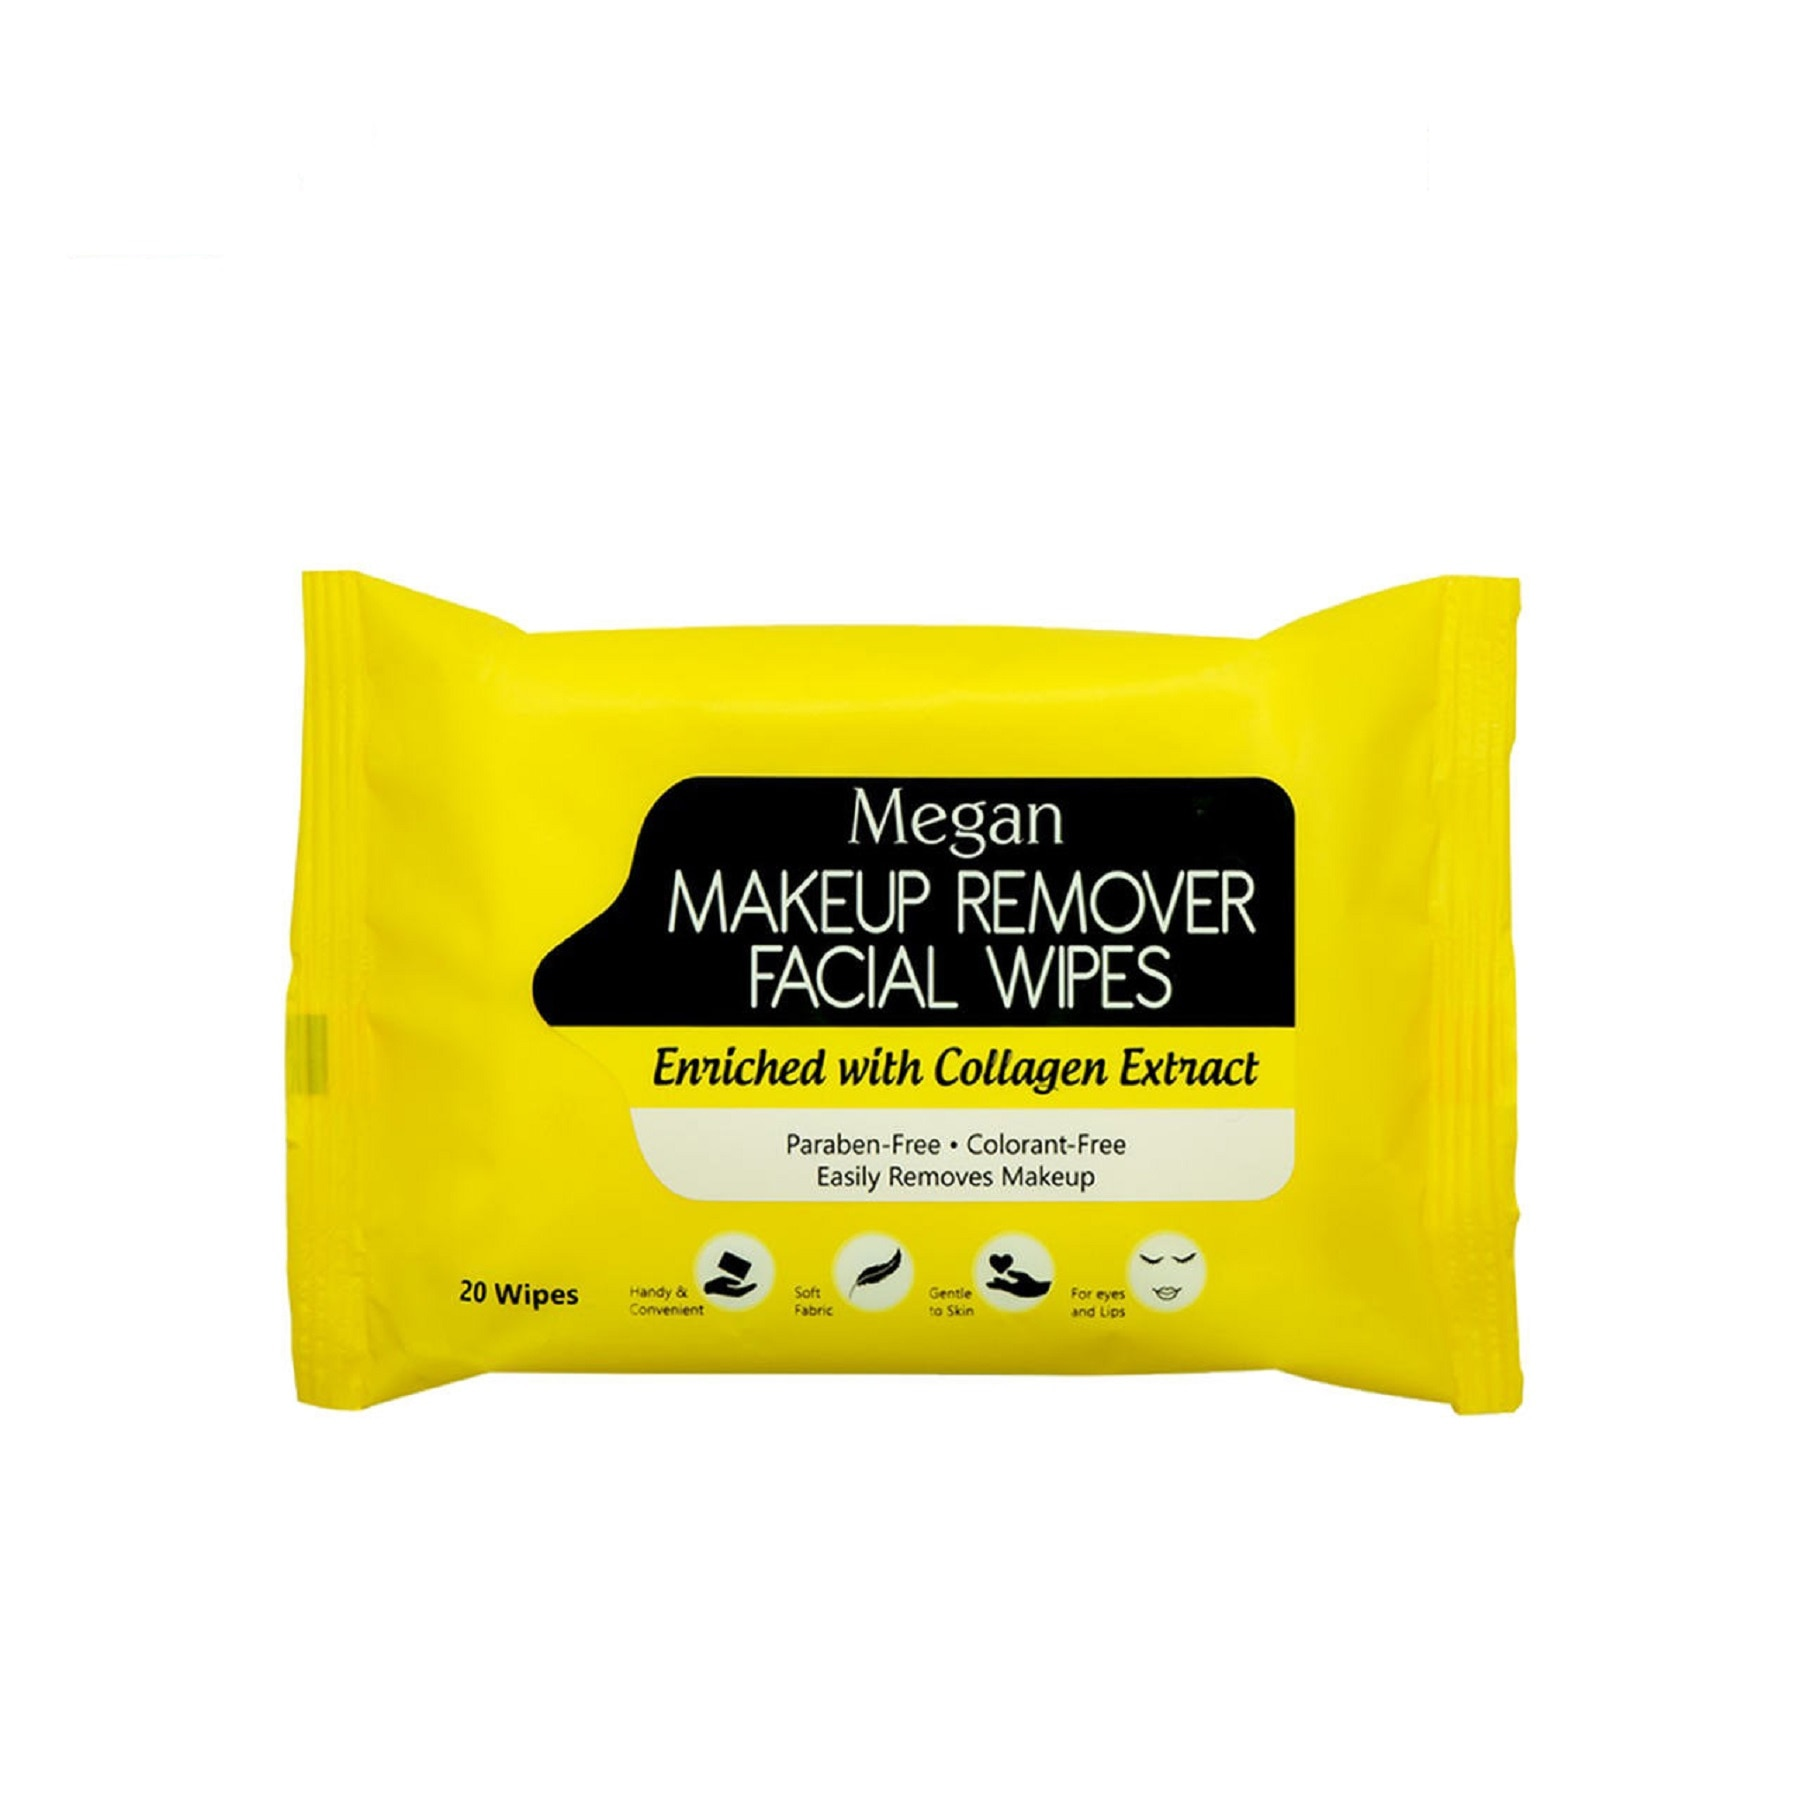 MEGANMake-up Remover Wipes with Collagen,Make up removerHot Summer Drops